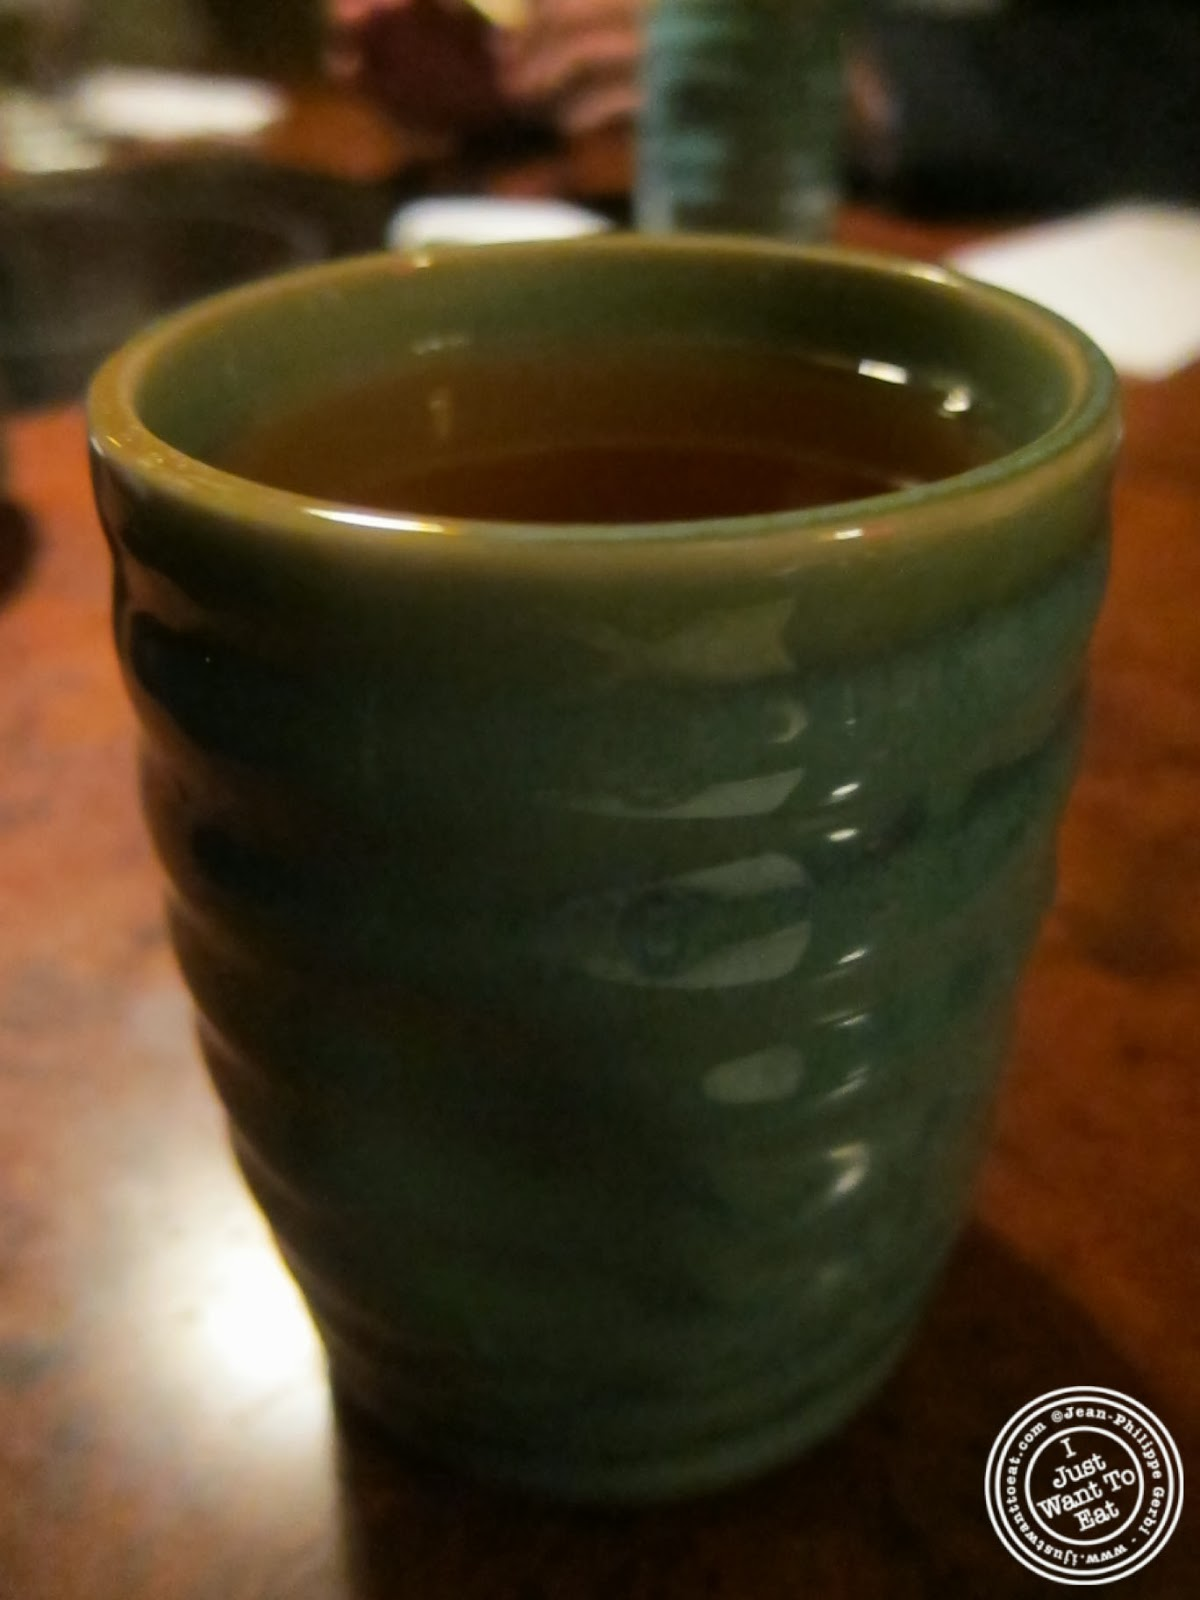 image of Green tea at East Japanese Restaurant in NYC New York & East Japanese Restaurant in NYC New York | I just want 2 eat